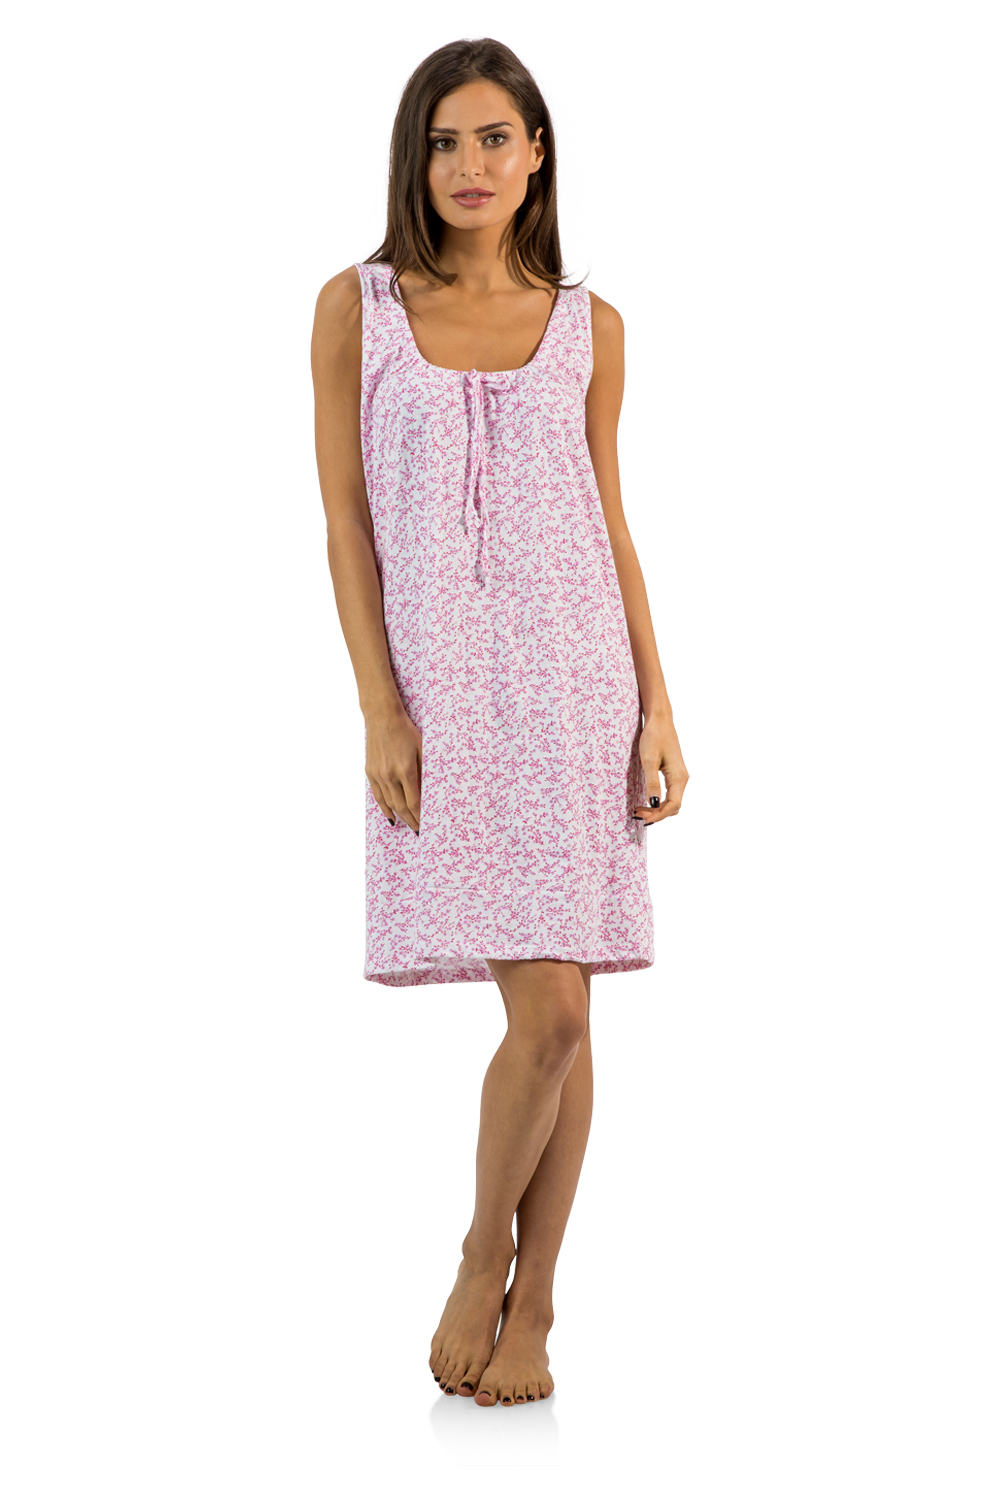 Casual Nights Womens Cotton Sleeveless Nightgown Chemise